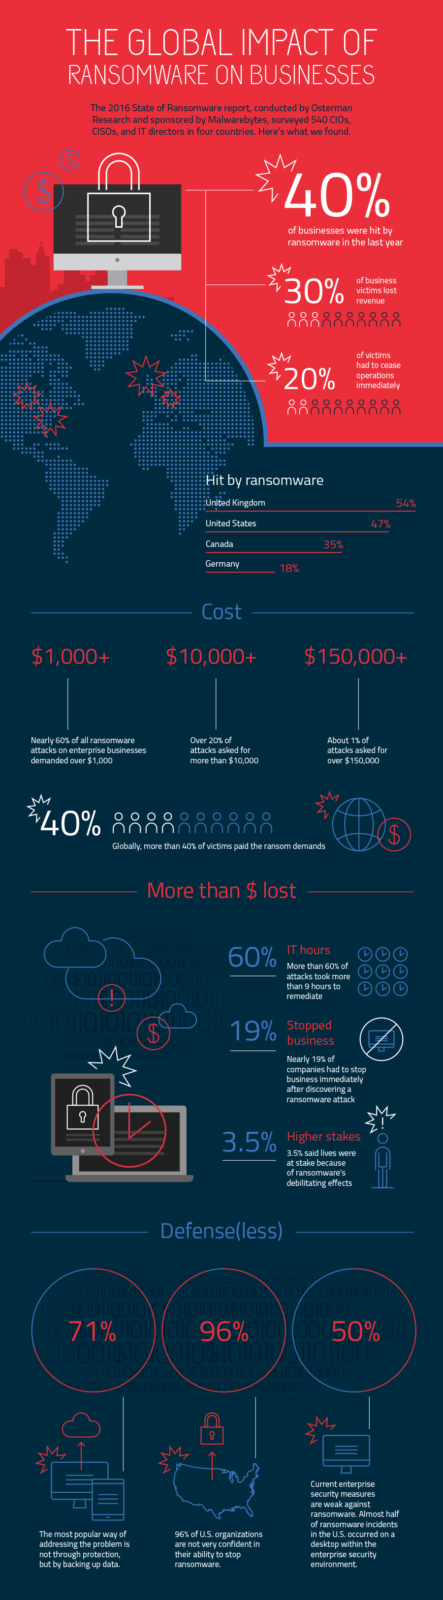 Malwarebytes infographic - The Global Impact of Ransomware